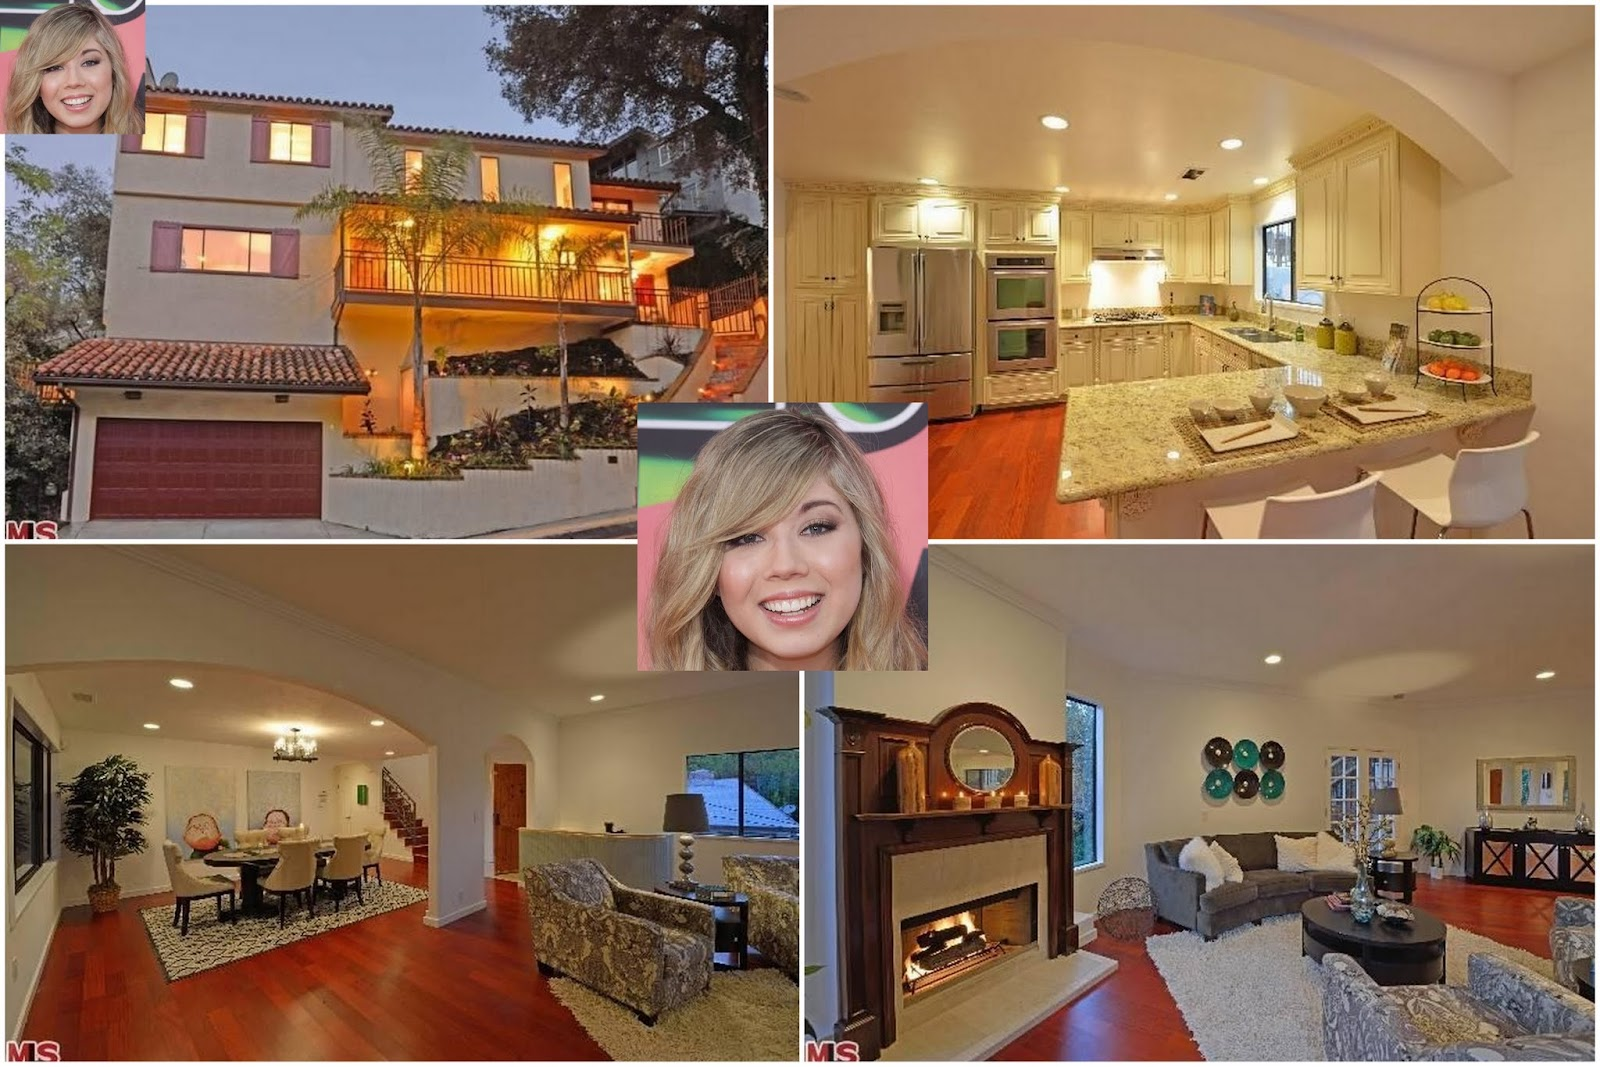 Celeb R E Jennette Mccurdy Of Icarly Moving Out To Studio City San Fernando Valley Blog